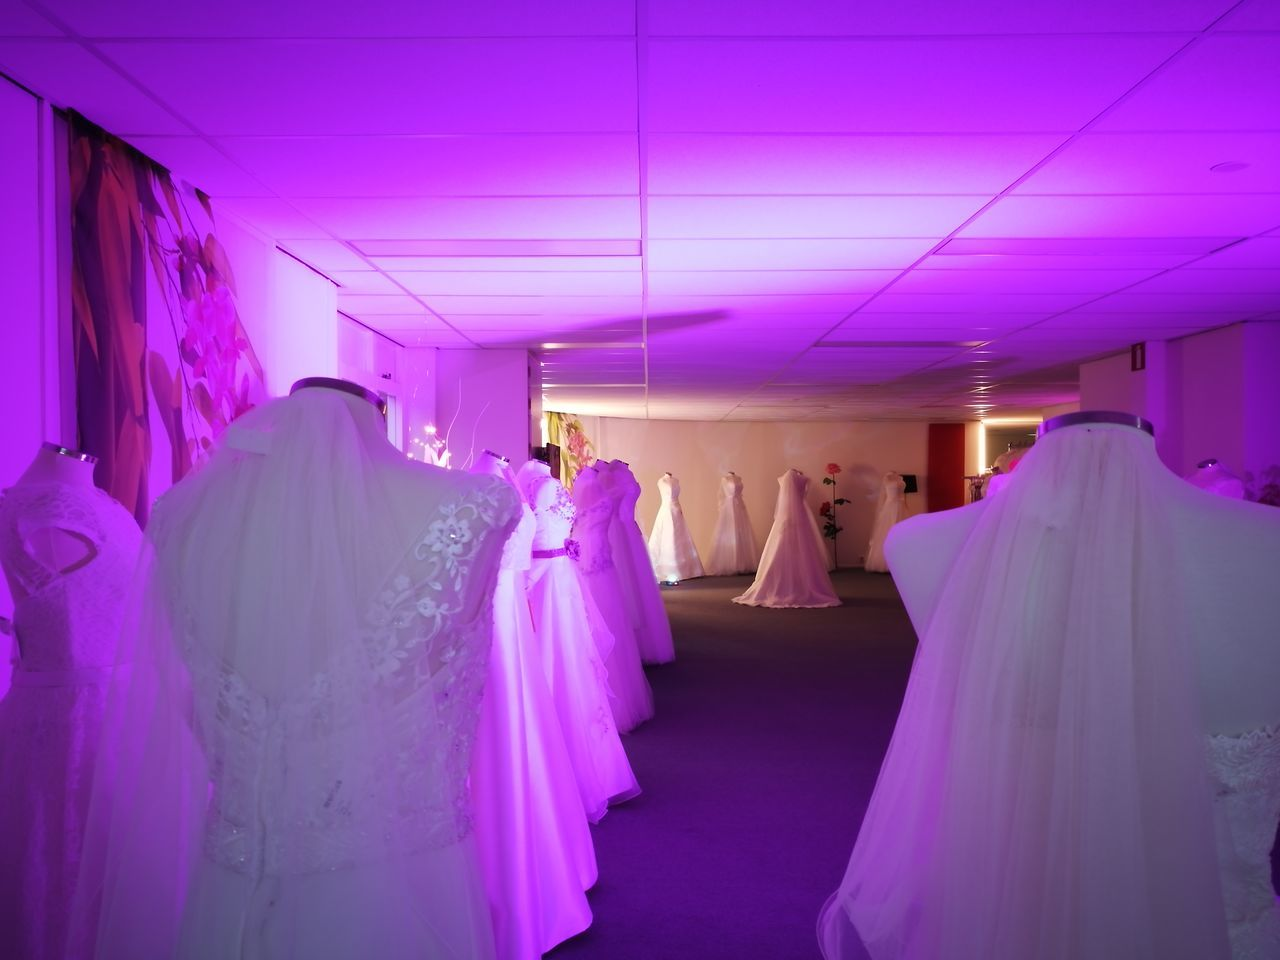 pink color, hanging, purple, multi colored, retail, indoors, store, no people, wedding dress, coathanger, day